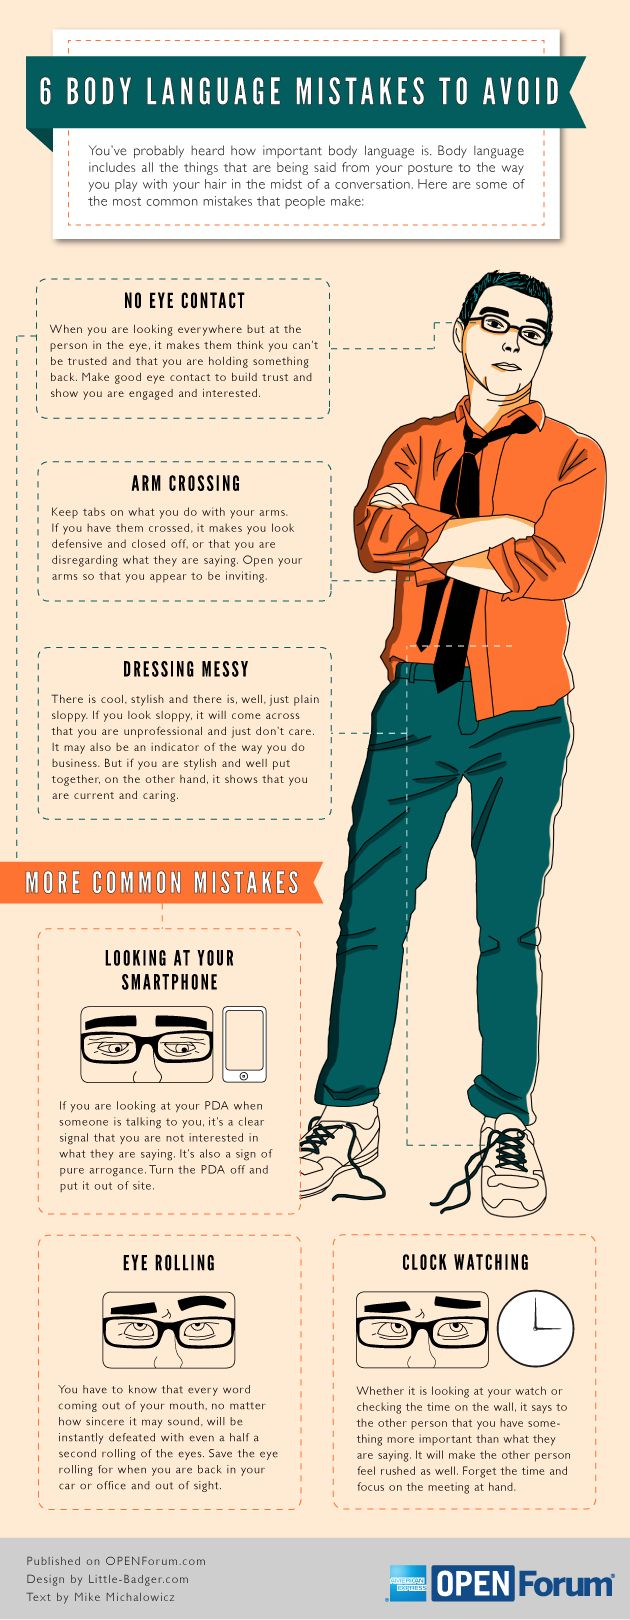 best ideas about reading body language creative 17 best ideas about reading body language creative writing writers and creative writing inspiration